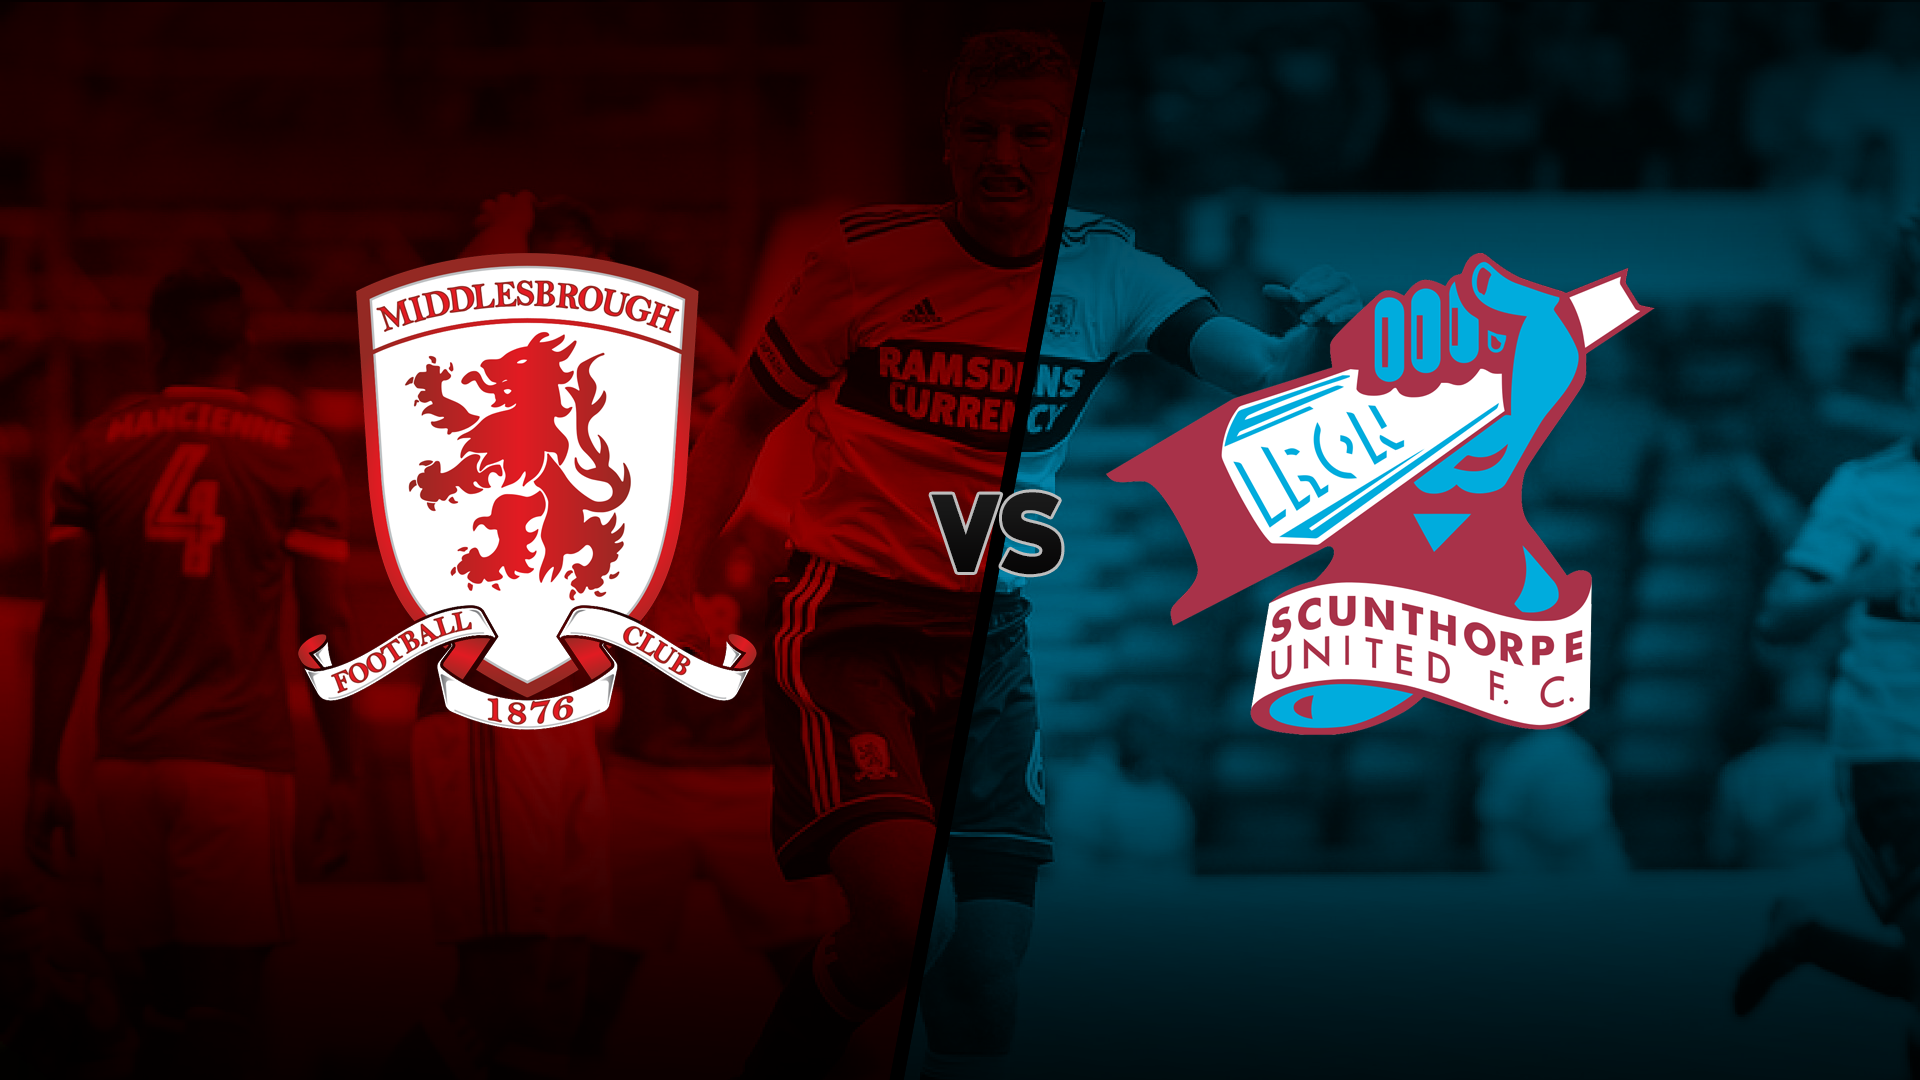 'Boro v Scunthorpe United - Opposition Preview'